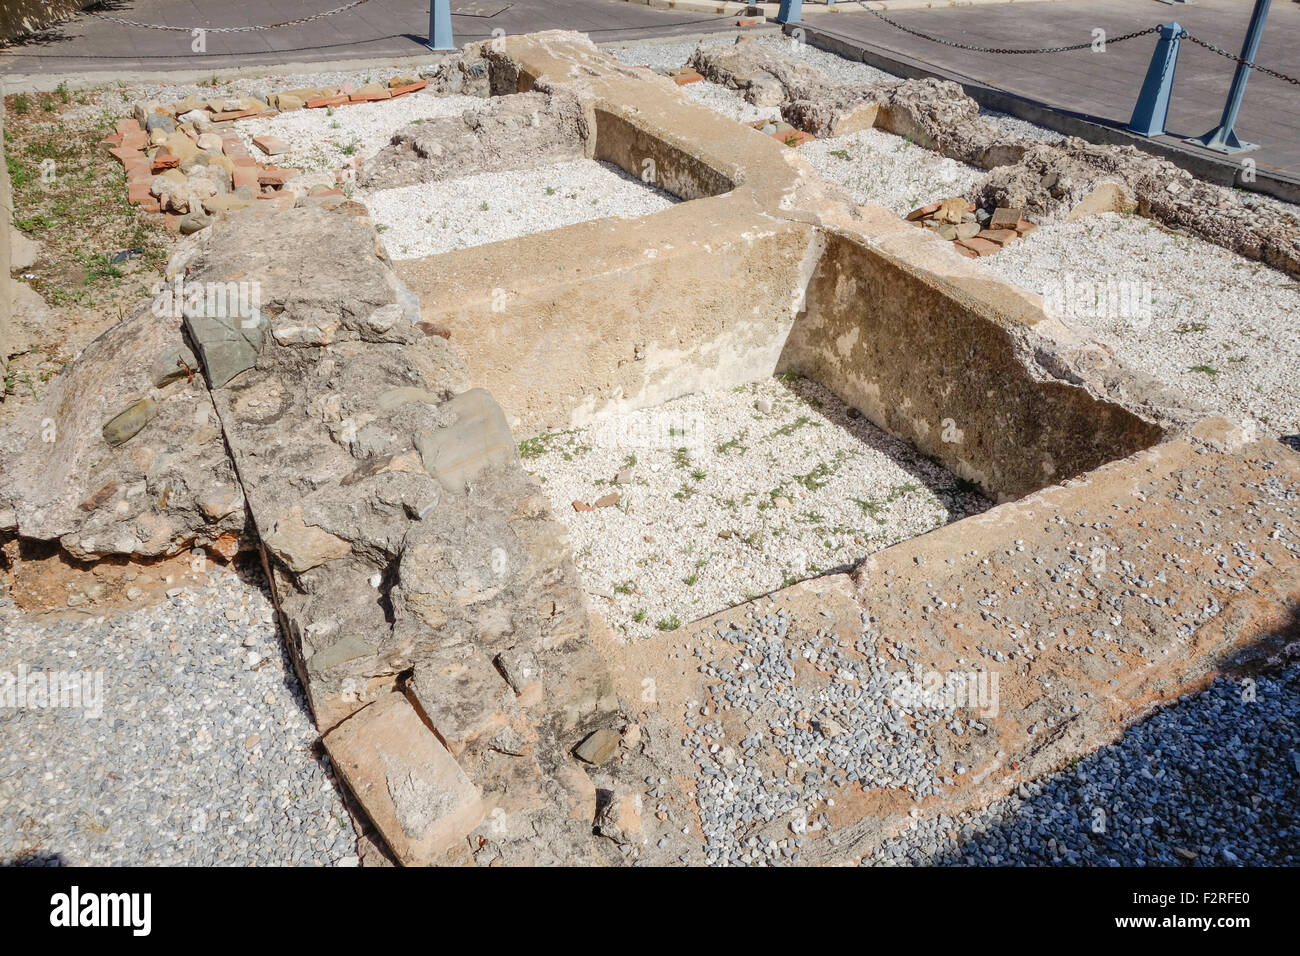 Roman ruins with cisterns for decanting and storing water for thermal baths and patio  Fuengirola, Andalusia, Spain. - Stock Image